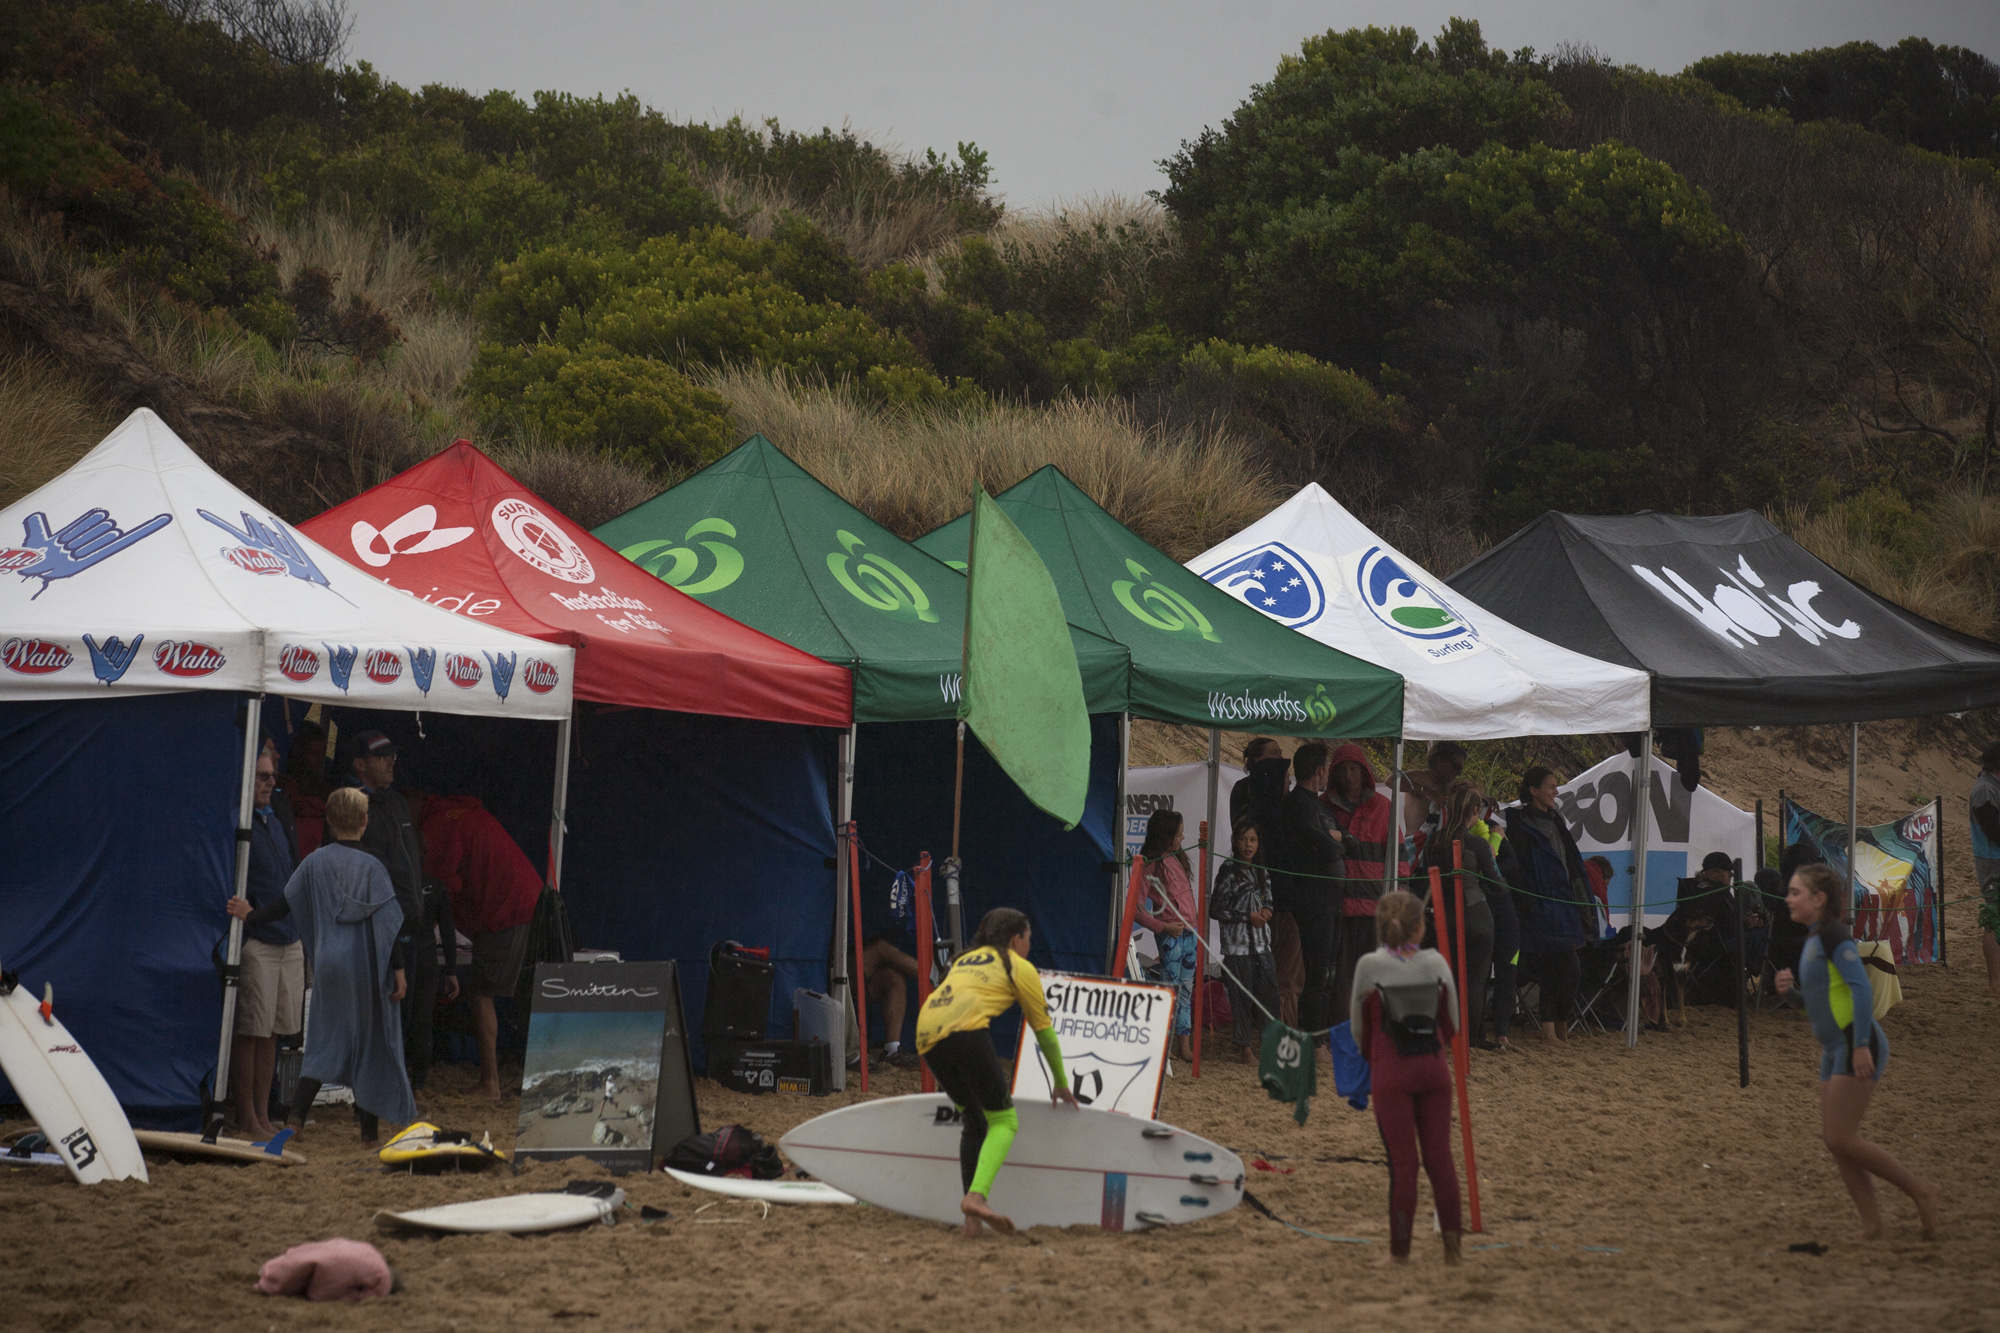 Clifton Beach Woolworths Surfer Groms Event presented by WAHU.